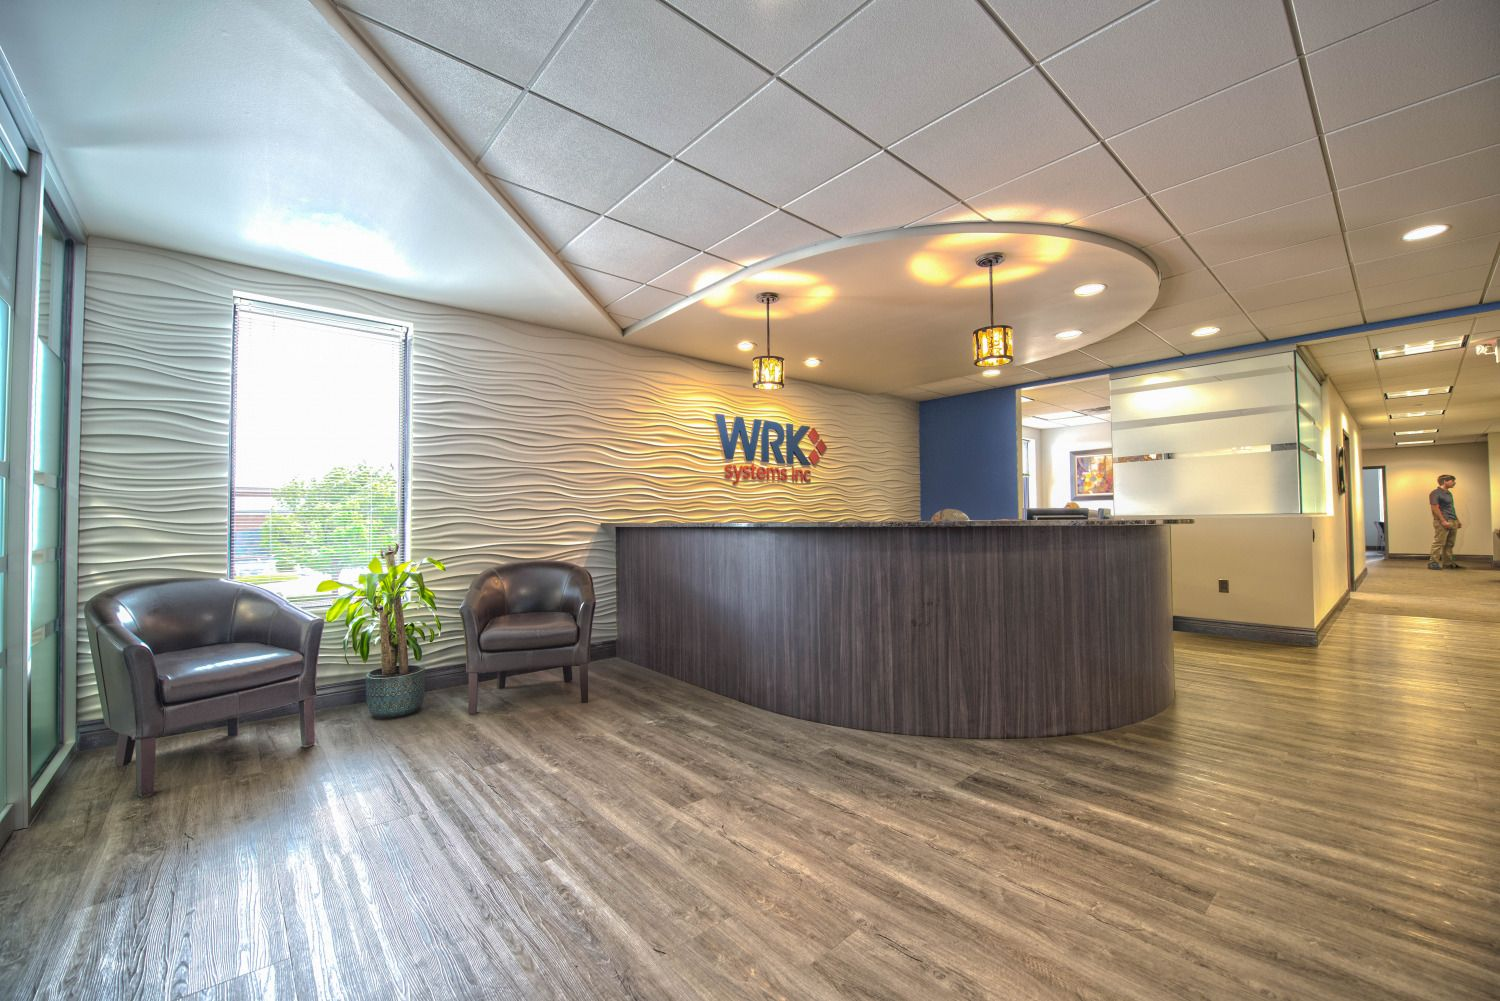 WRK Systems (With images) Interior, Design, Office space